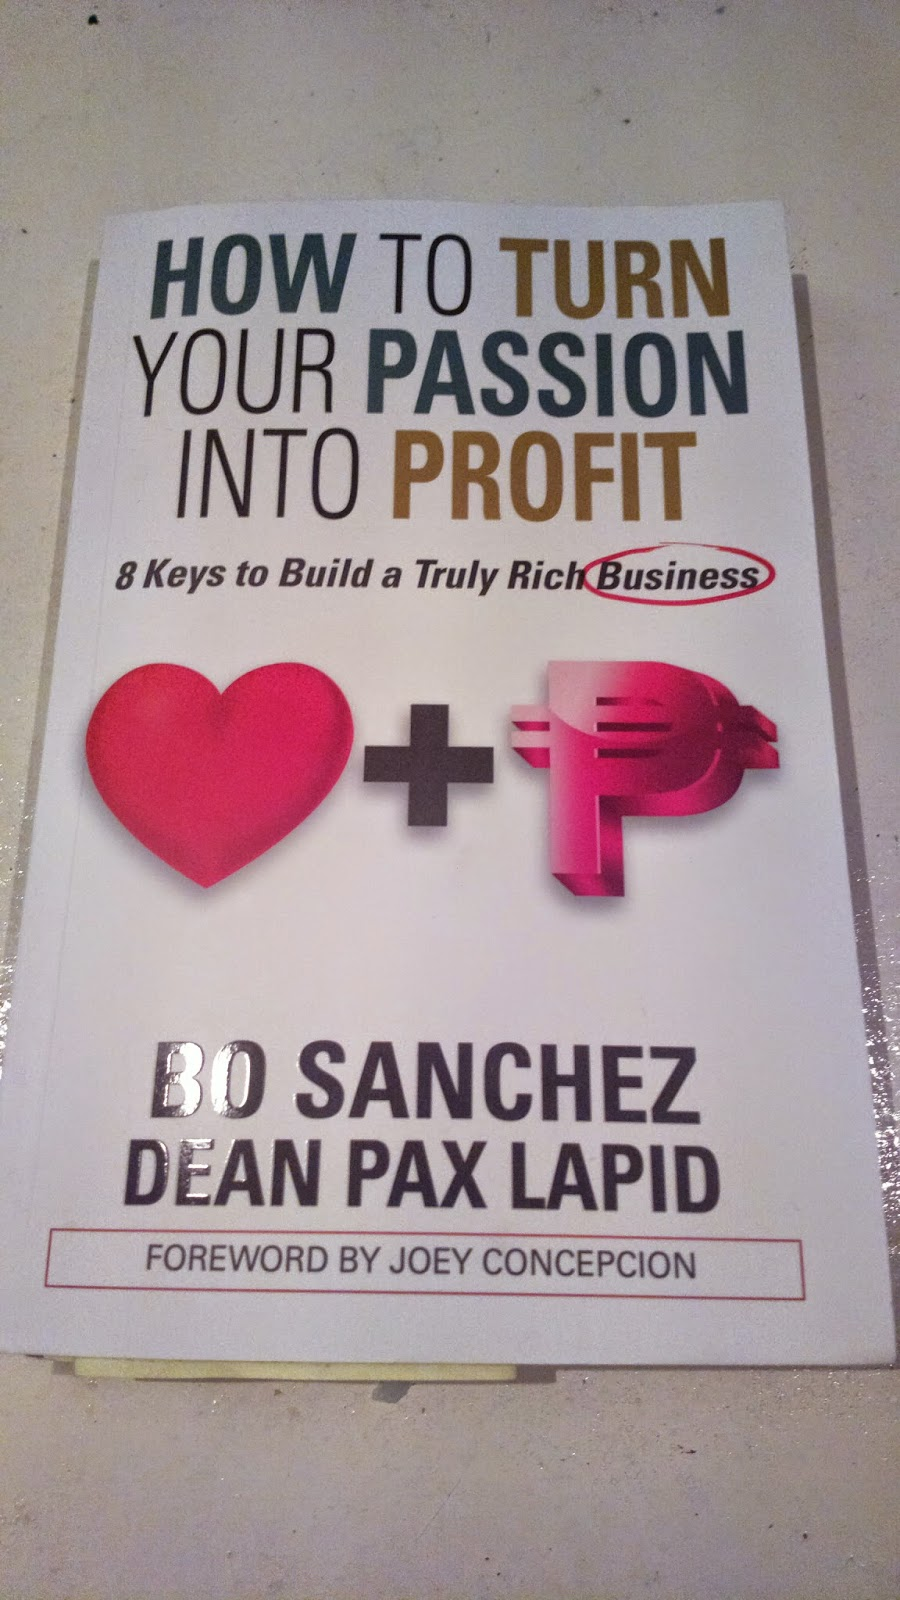 How to Turn Your Passion into Profit (8 Keys to Build a Truly Rich Business) Bo Sanchez Dean Pax Lapid